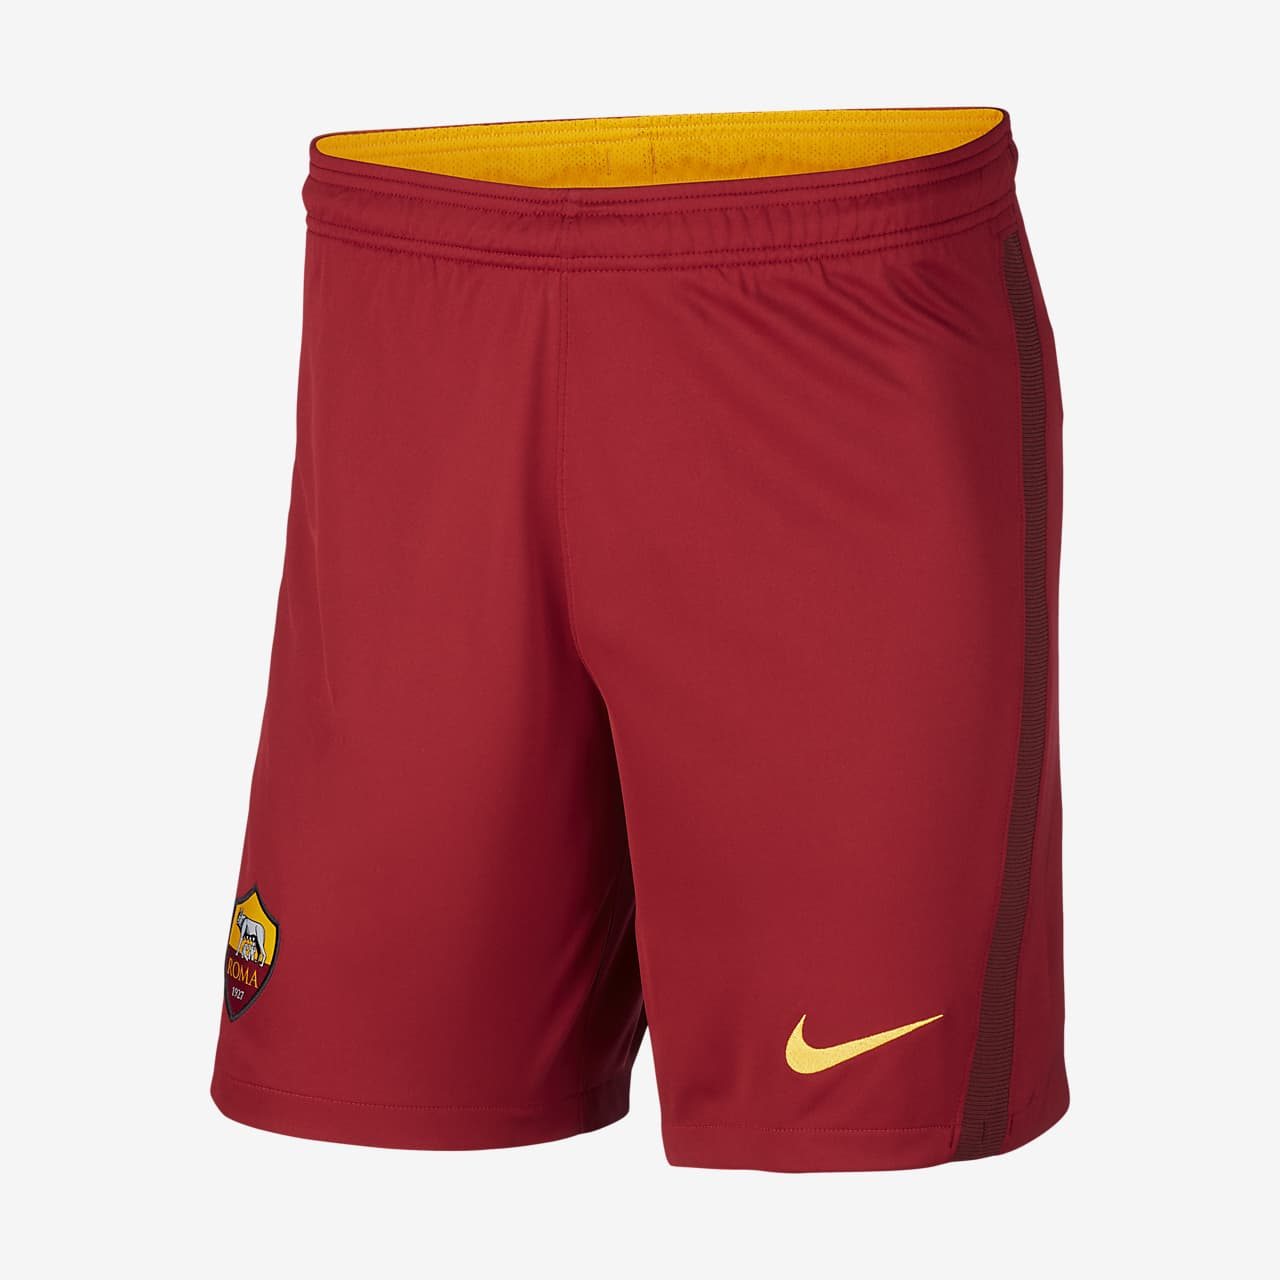 A.S. Roma 2020/21 Stadium Home Men's Football Shorts